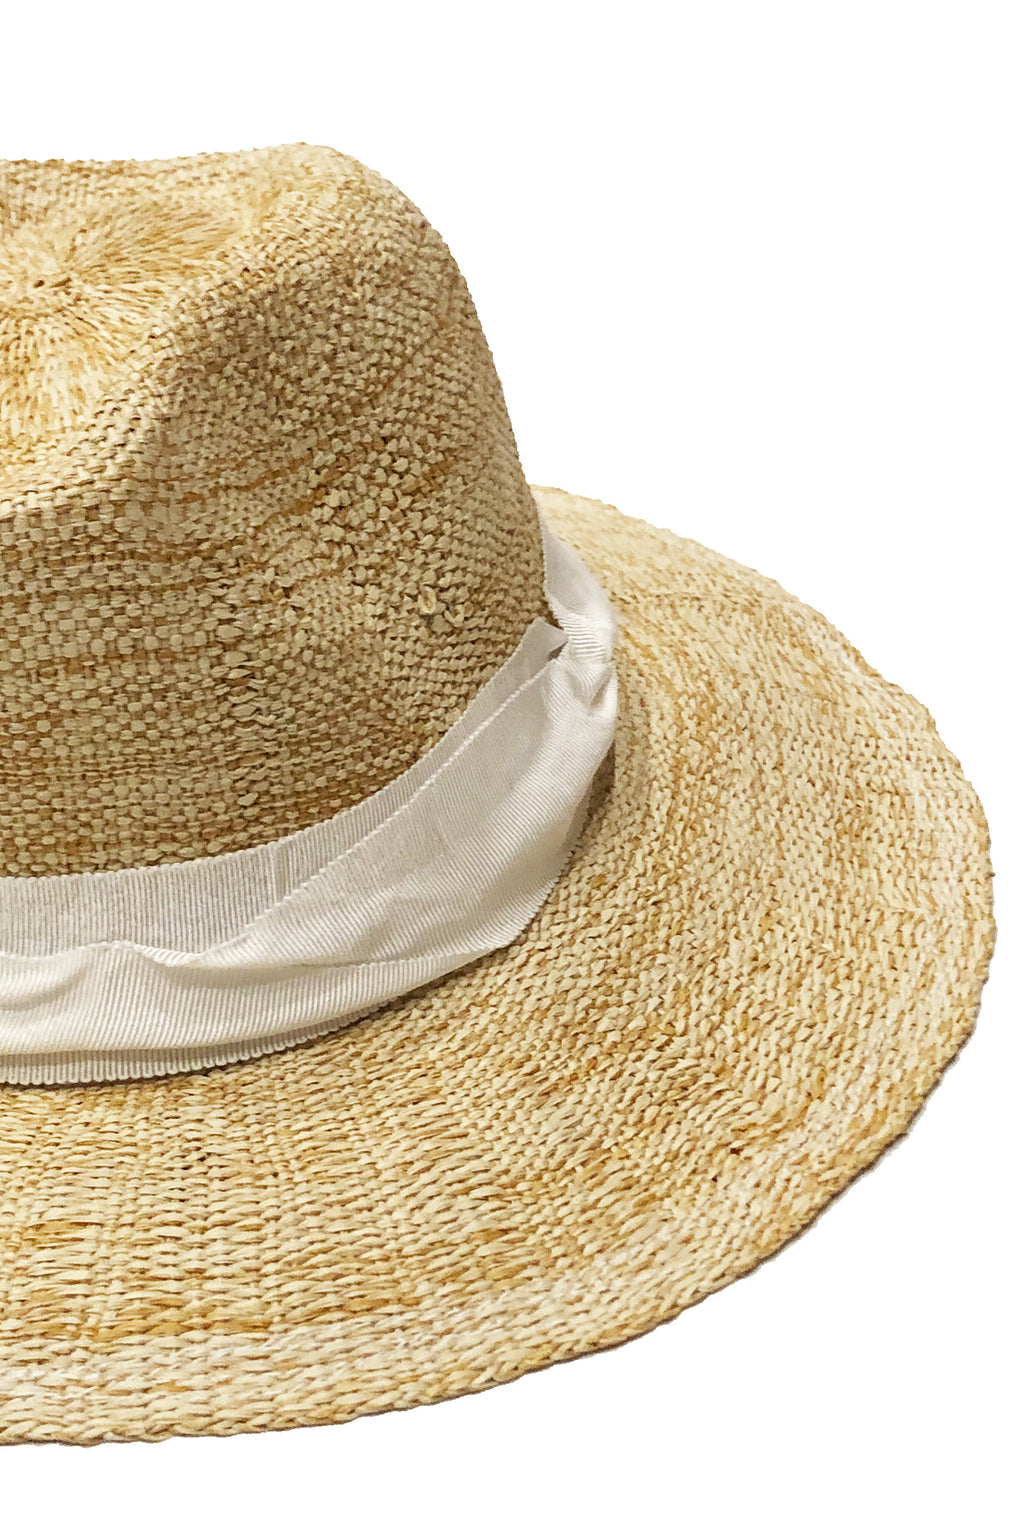 Lola Ehrlich Rise and Shine Straw Hat in Oatmeal with White Ribbon